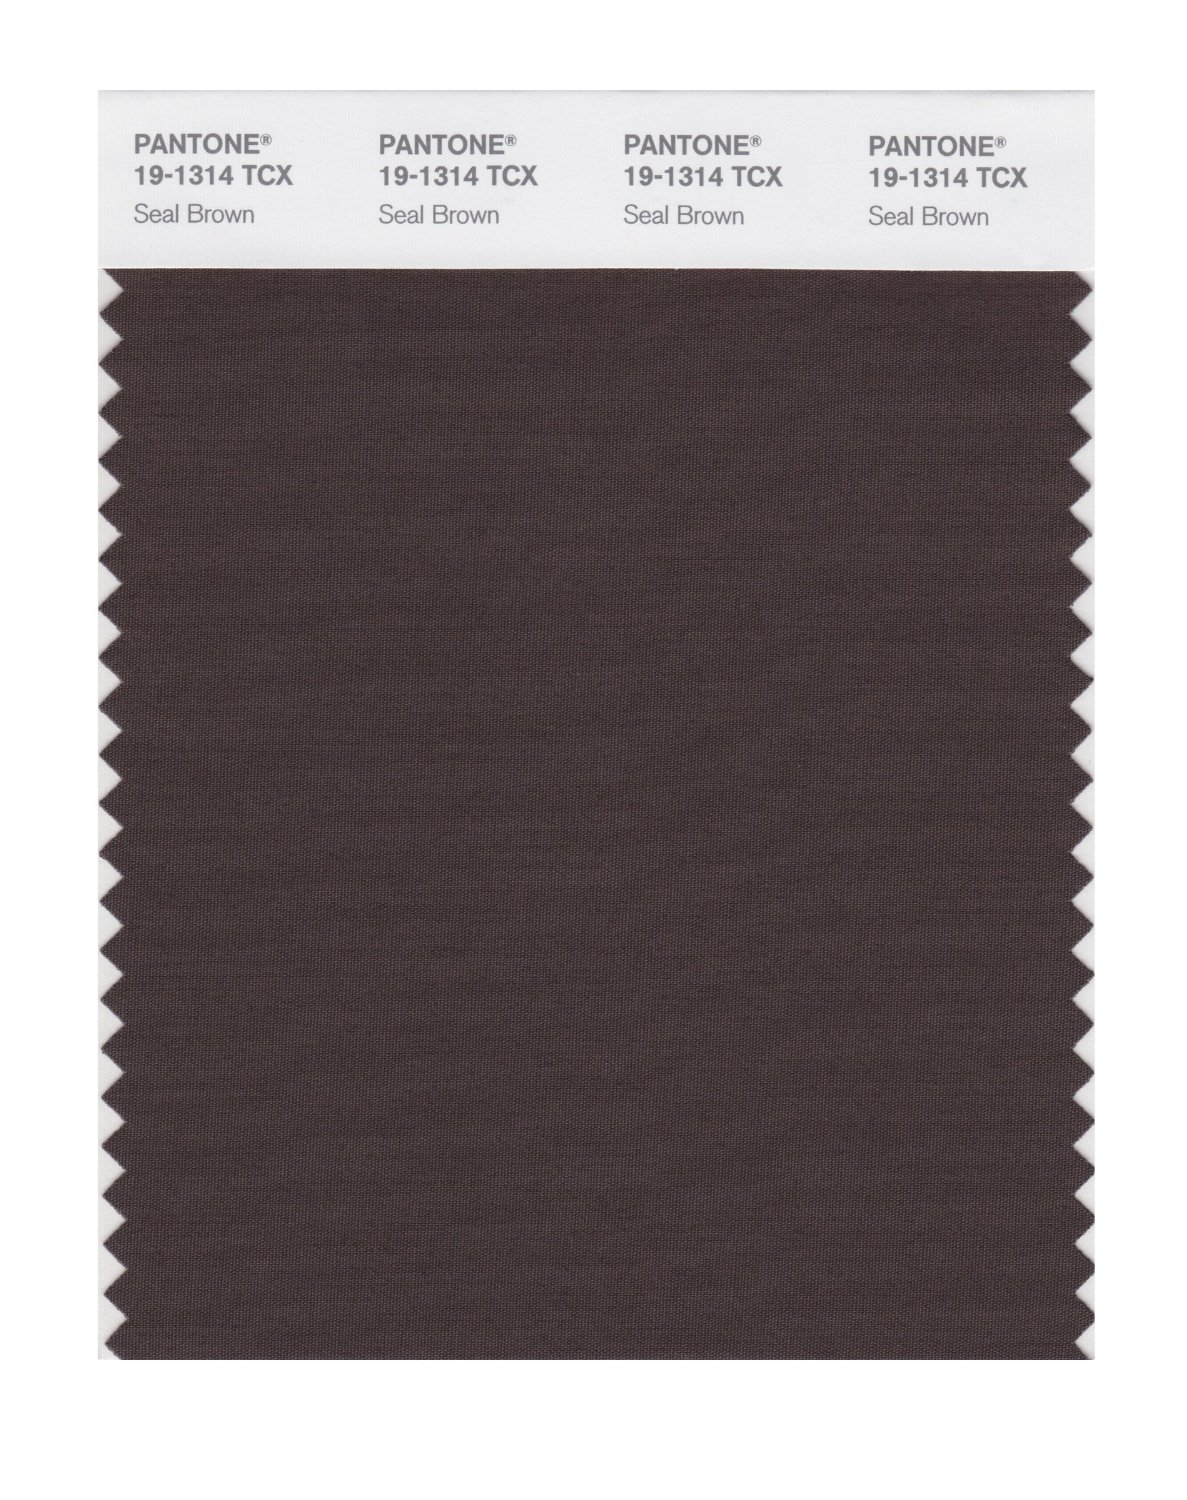 Pantone Smart Swatch 19-1314 Seal Brown